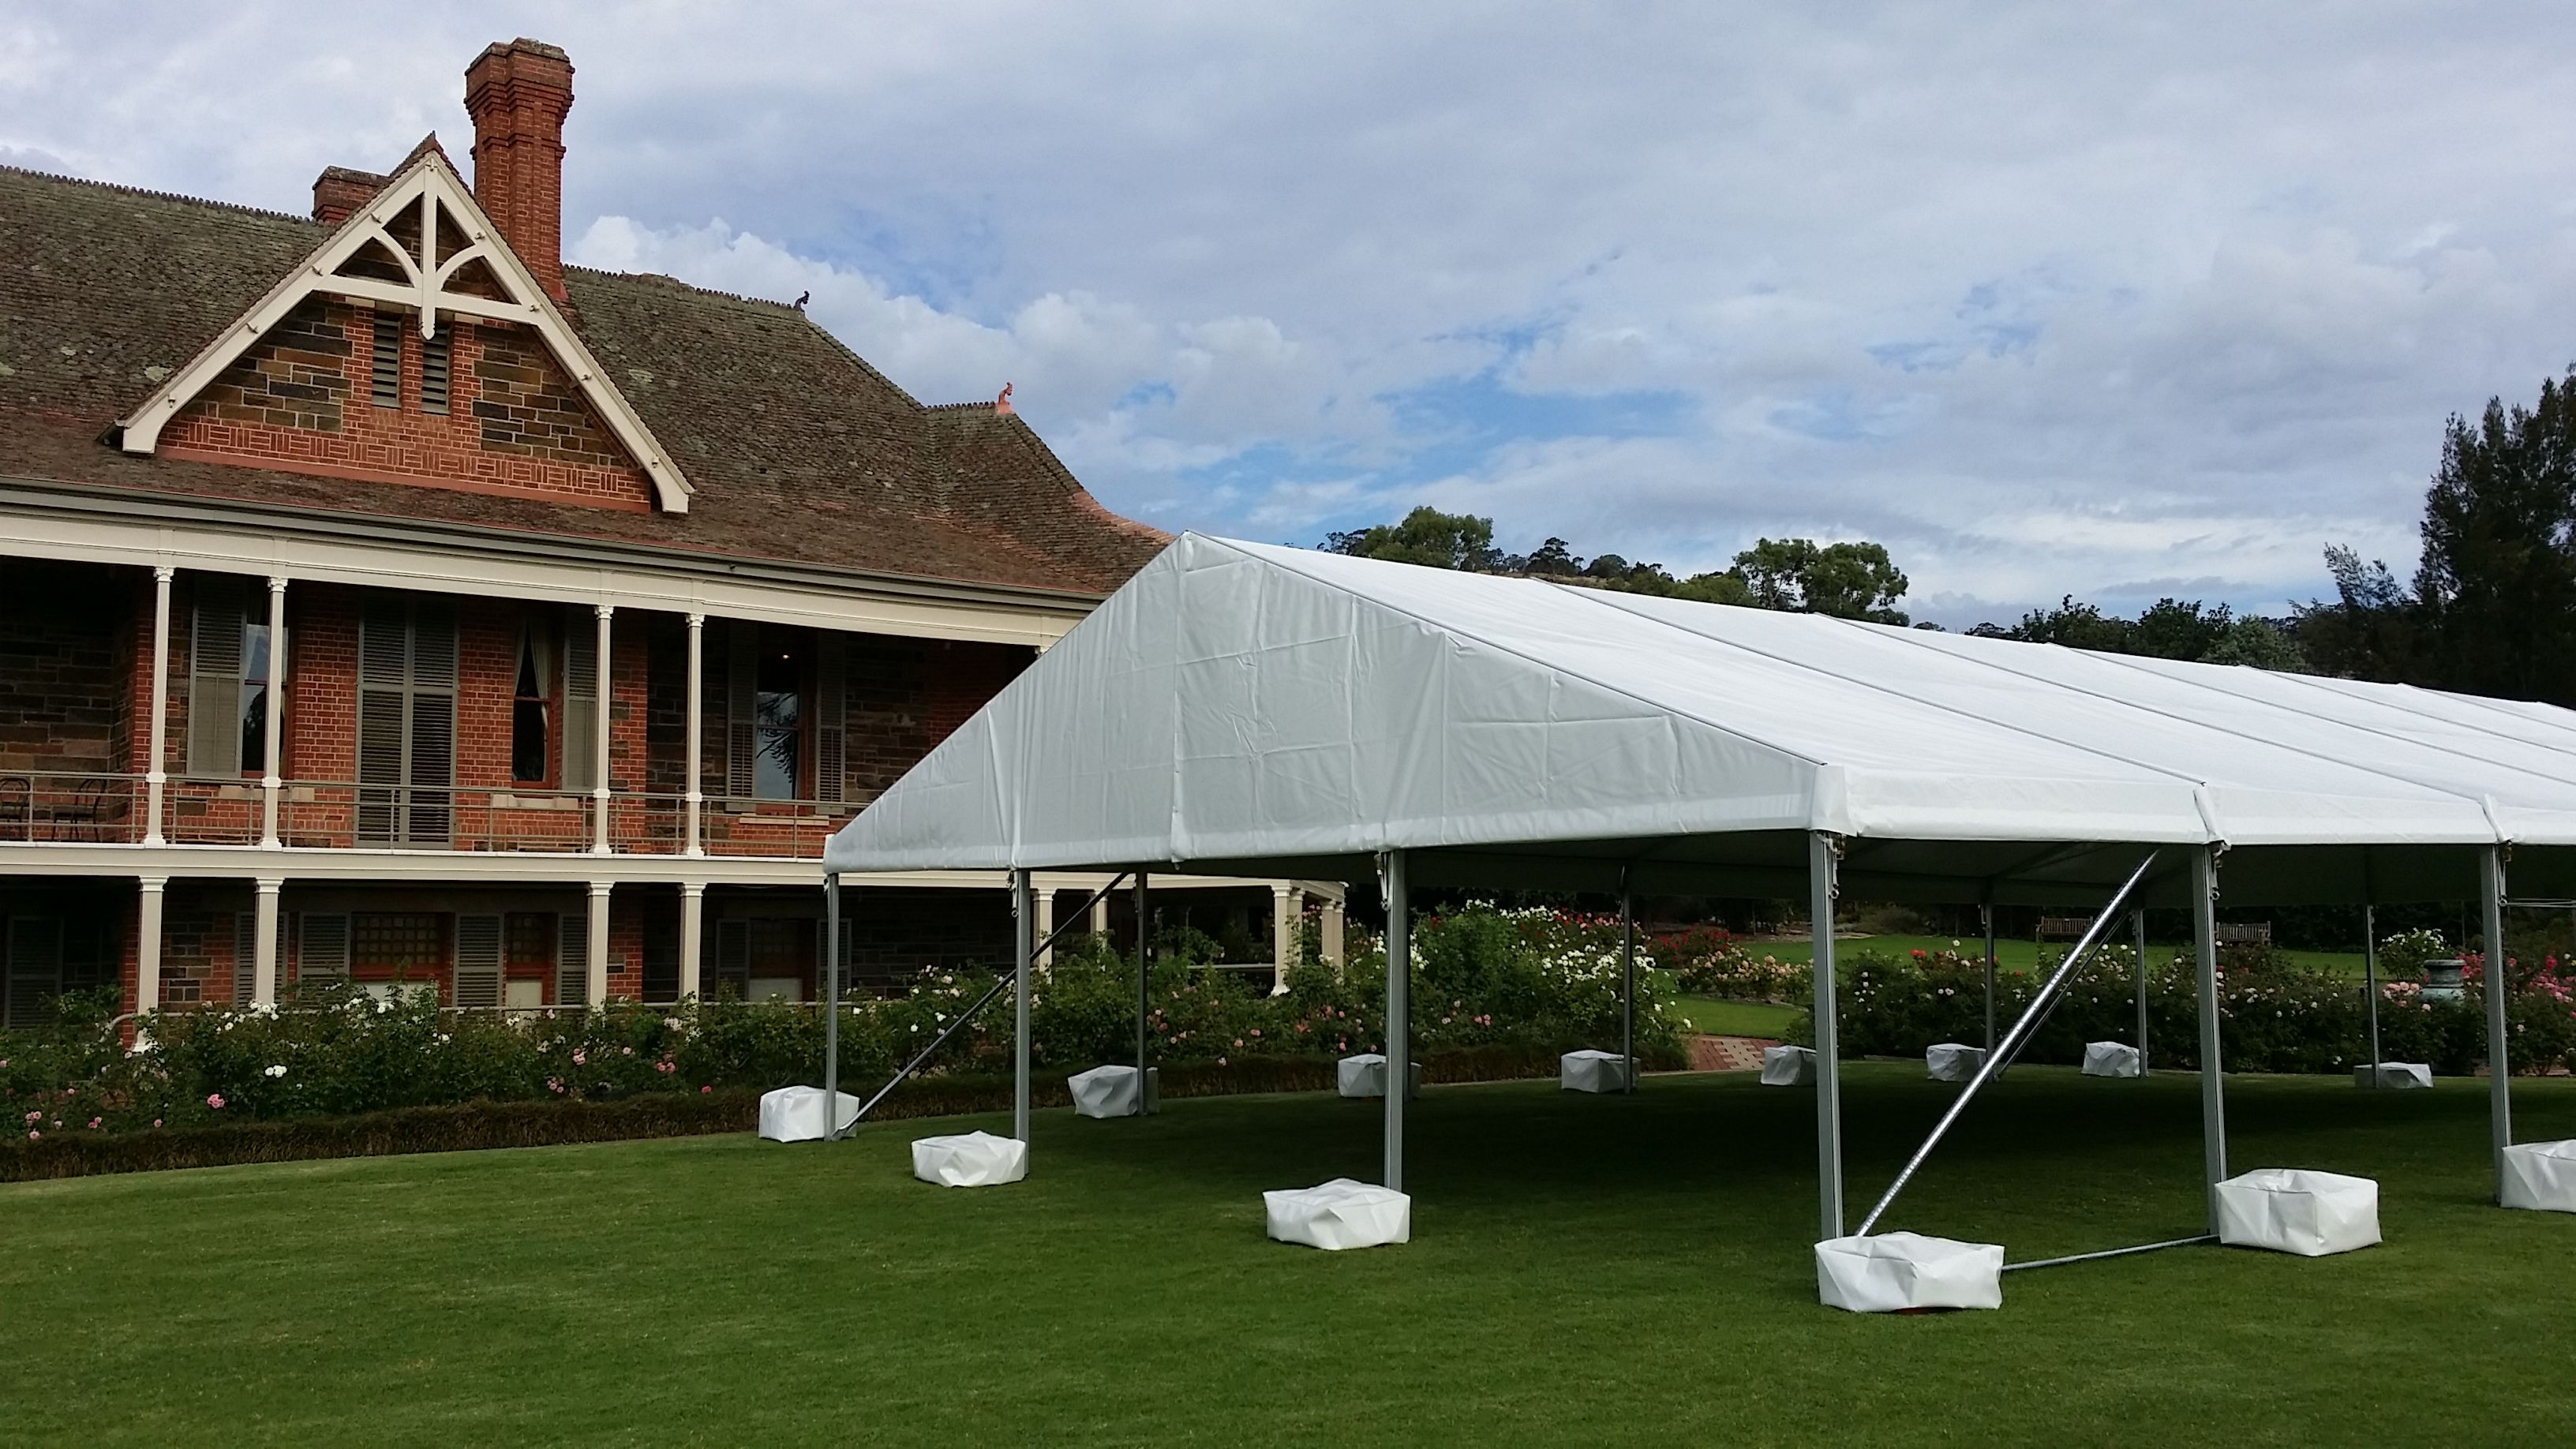 Marquee hire tents and pavilion hiring in Adelaide South Australia. & Pin by Australian Hiring Company - Party and Event Hire on AHC ...